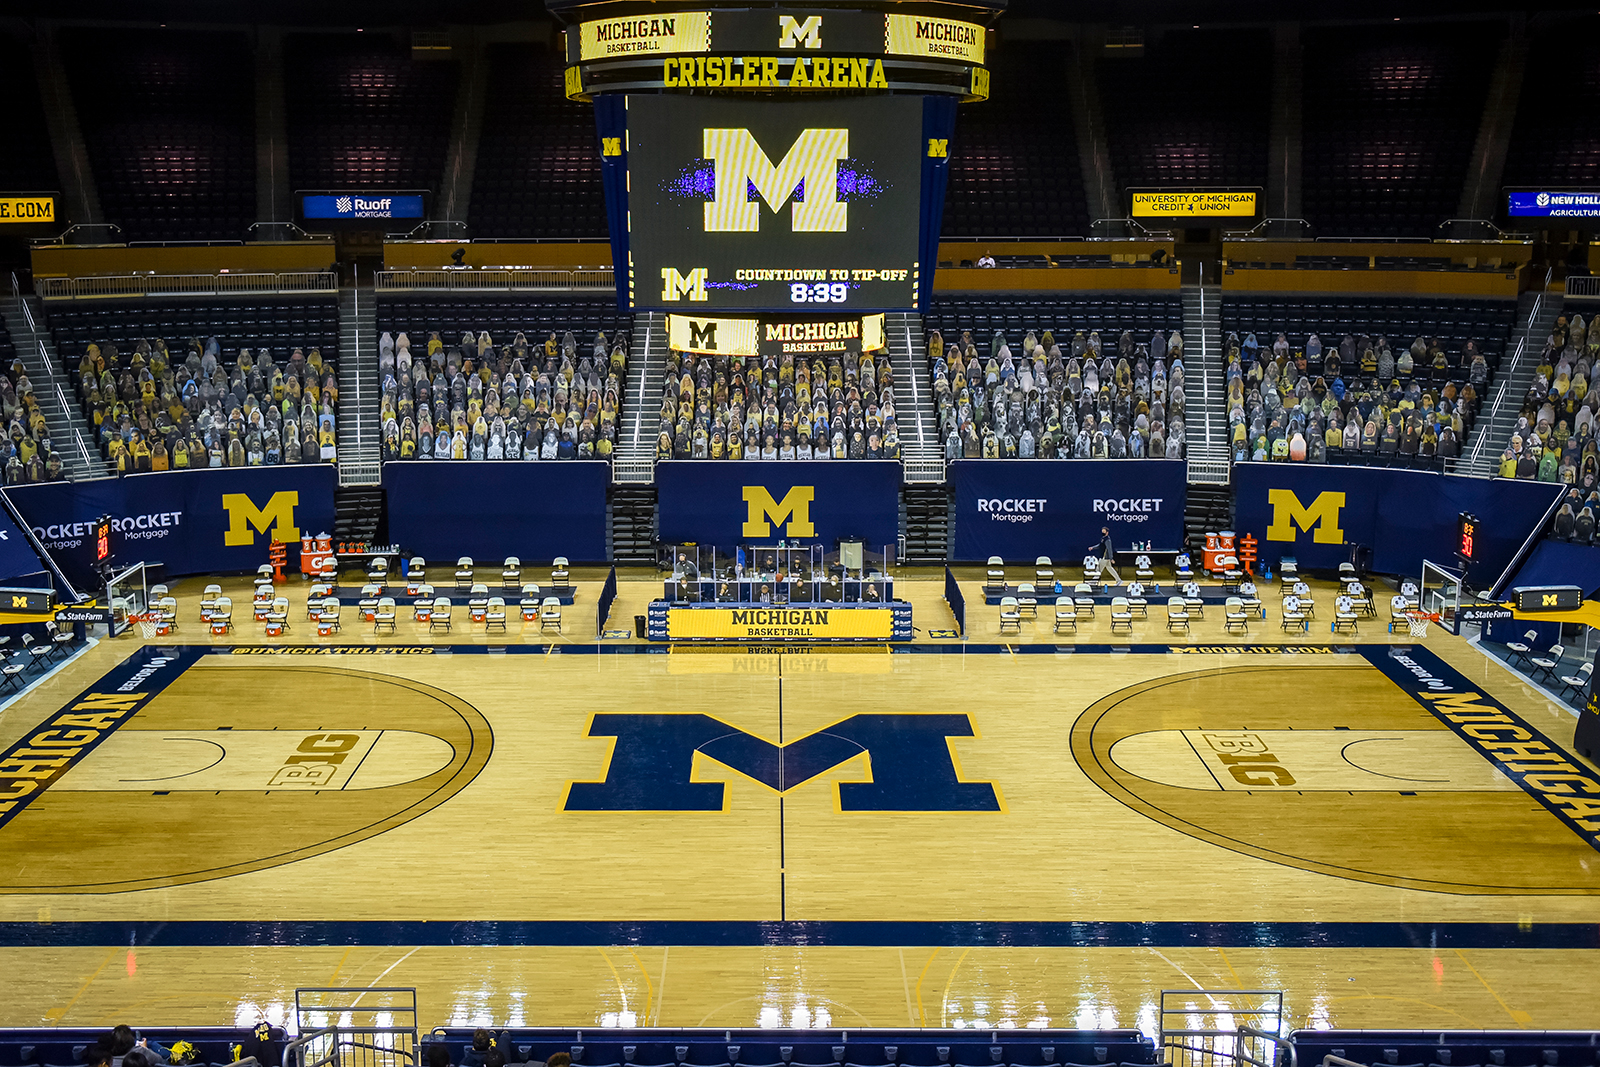 Crisler Arena is seen ahead of the game between the Minnesota Golden Gophers and Michigan Wolverines in Ann Arbor, Michigan, on January 06.